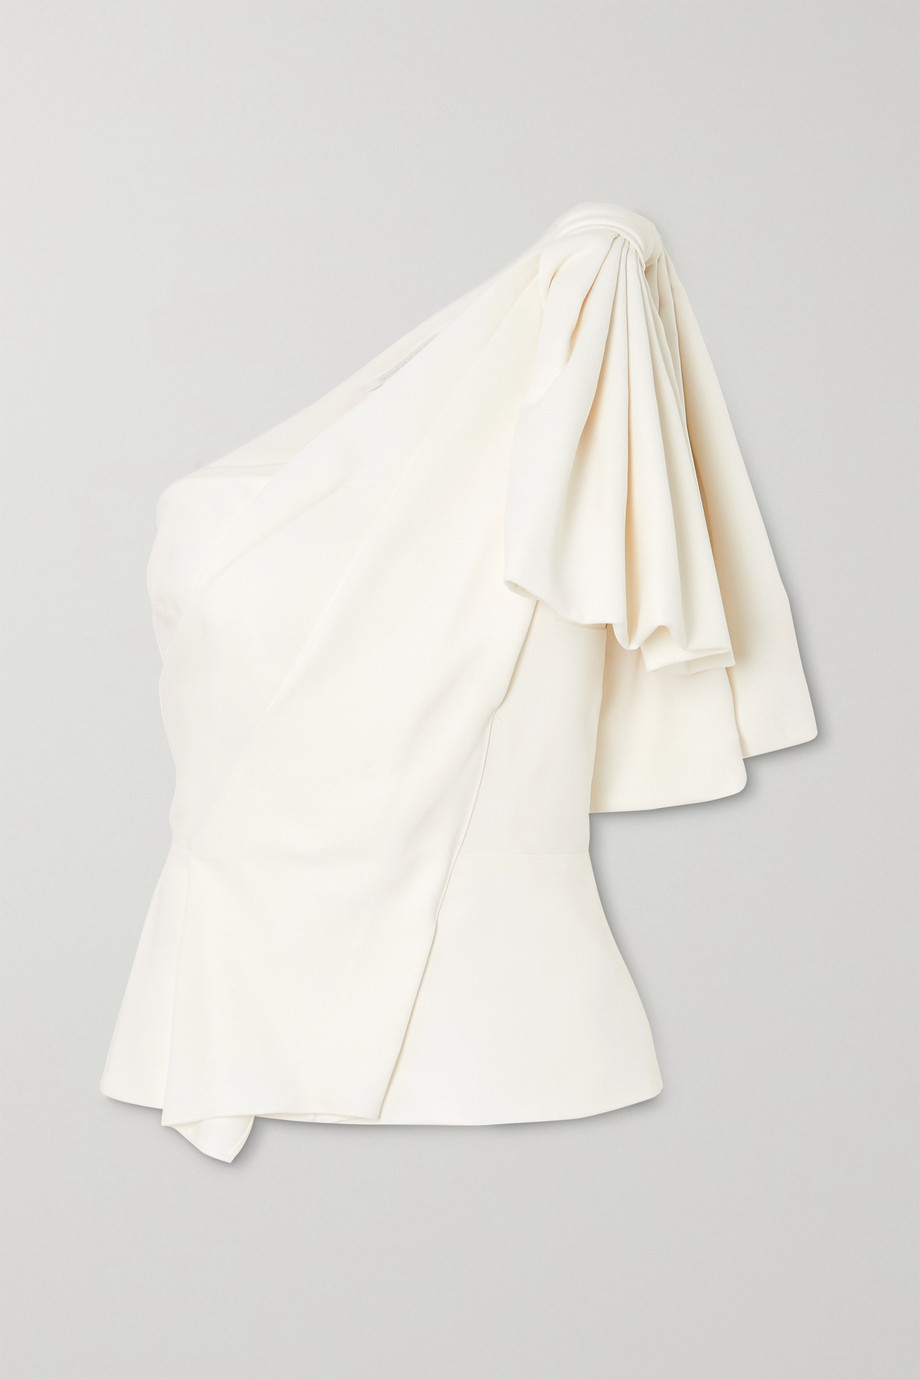 Roland Mouret Toulon one-shoulder bow-detailed gathered crepe top